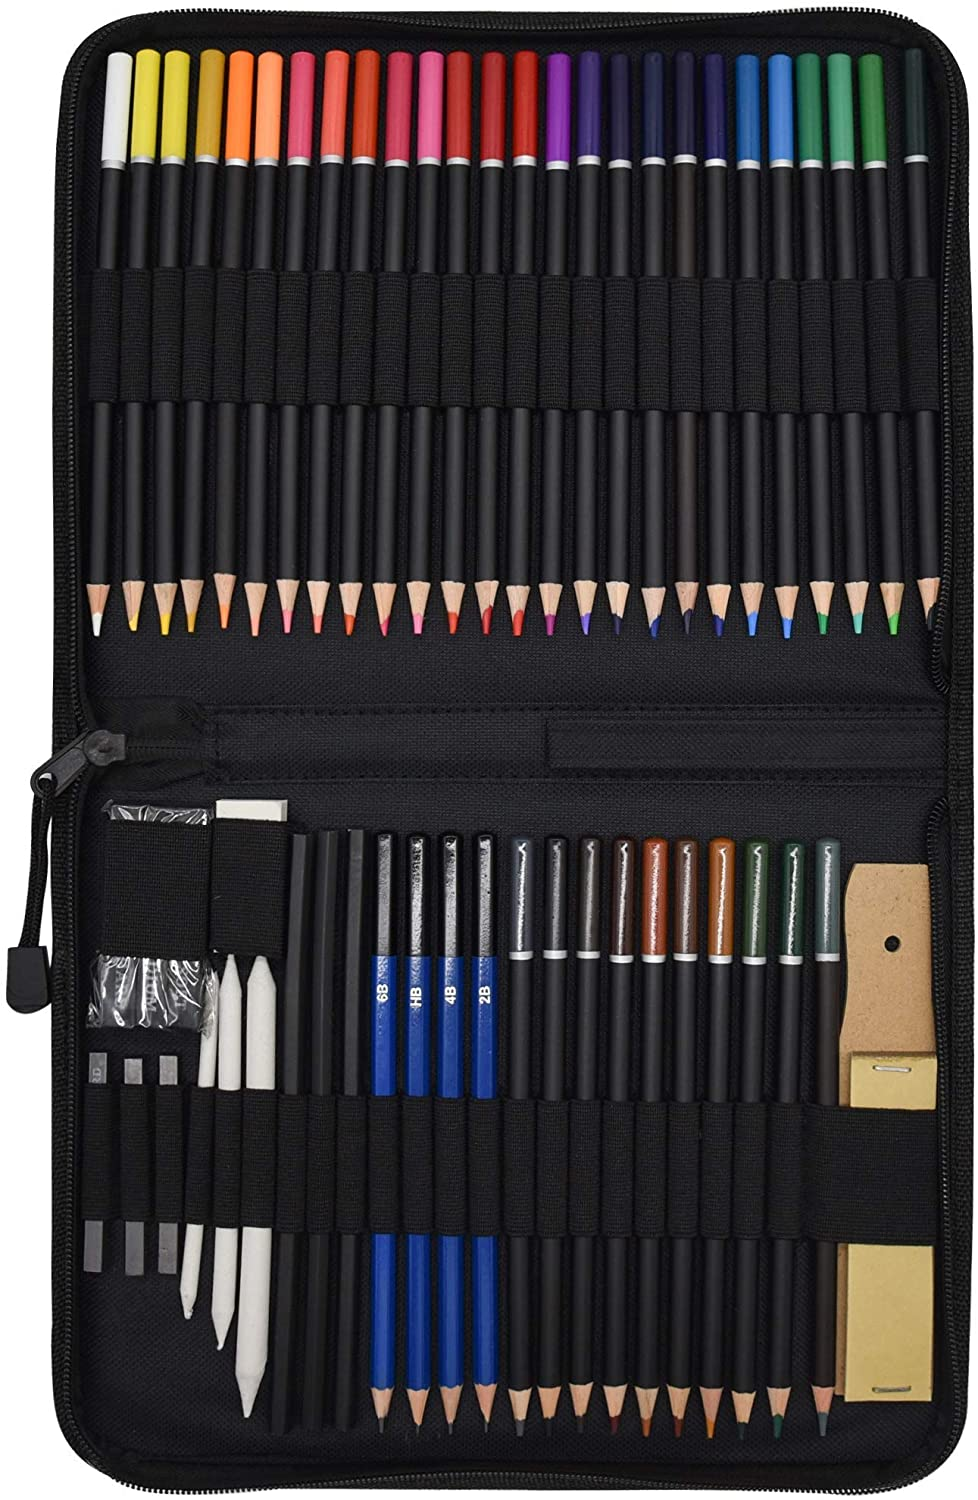 Orionstar 54-Piece Colored Pencils Set, Drawing Pencils and Sketching Kit with Zipper Case, Professional Sketch Art Supplies for Adults Sketching Shading Coloring Book, 36 Colors + 18 PCS